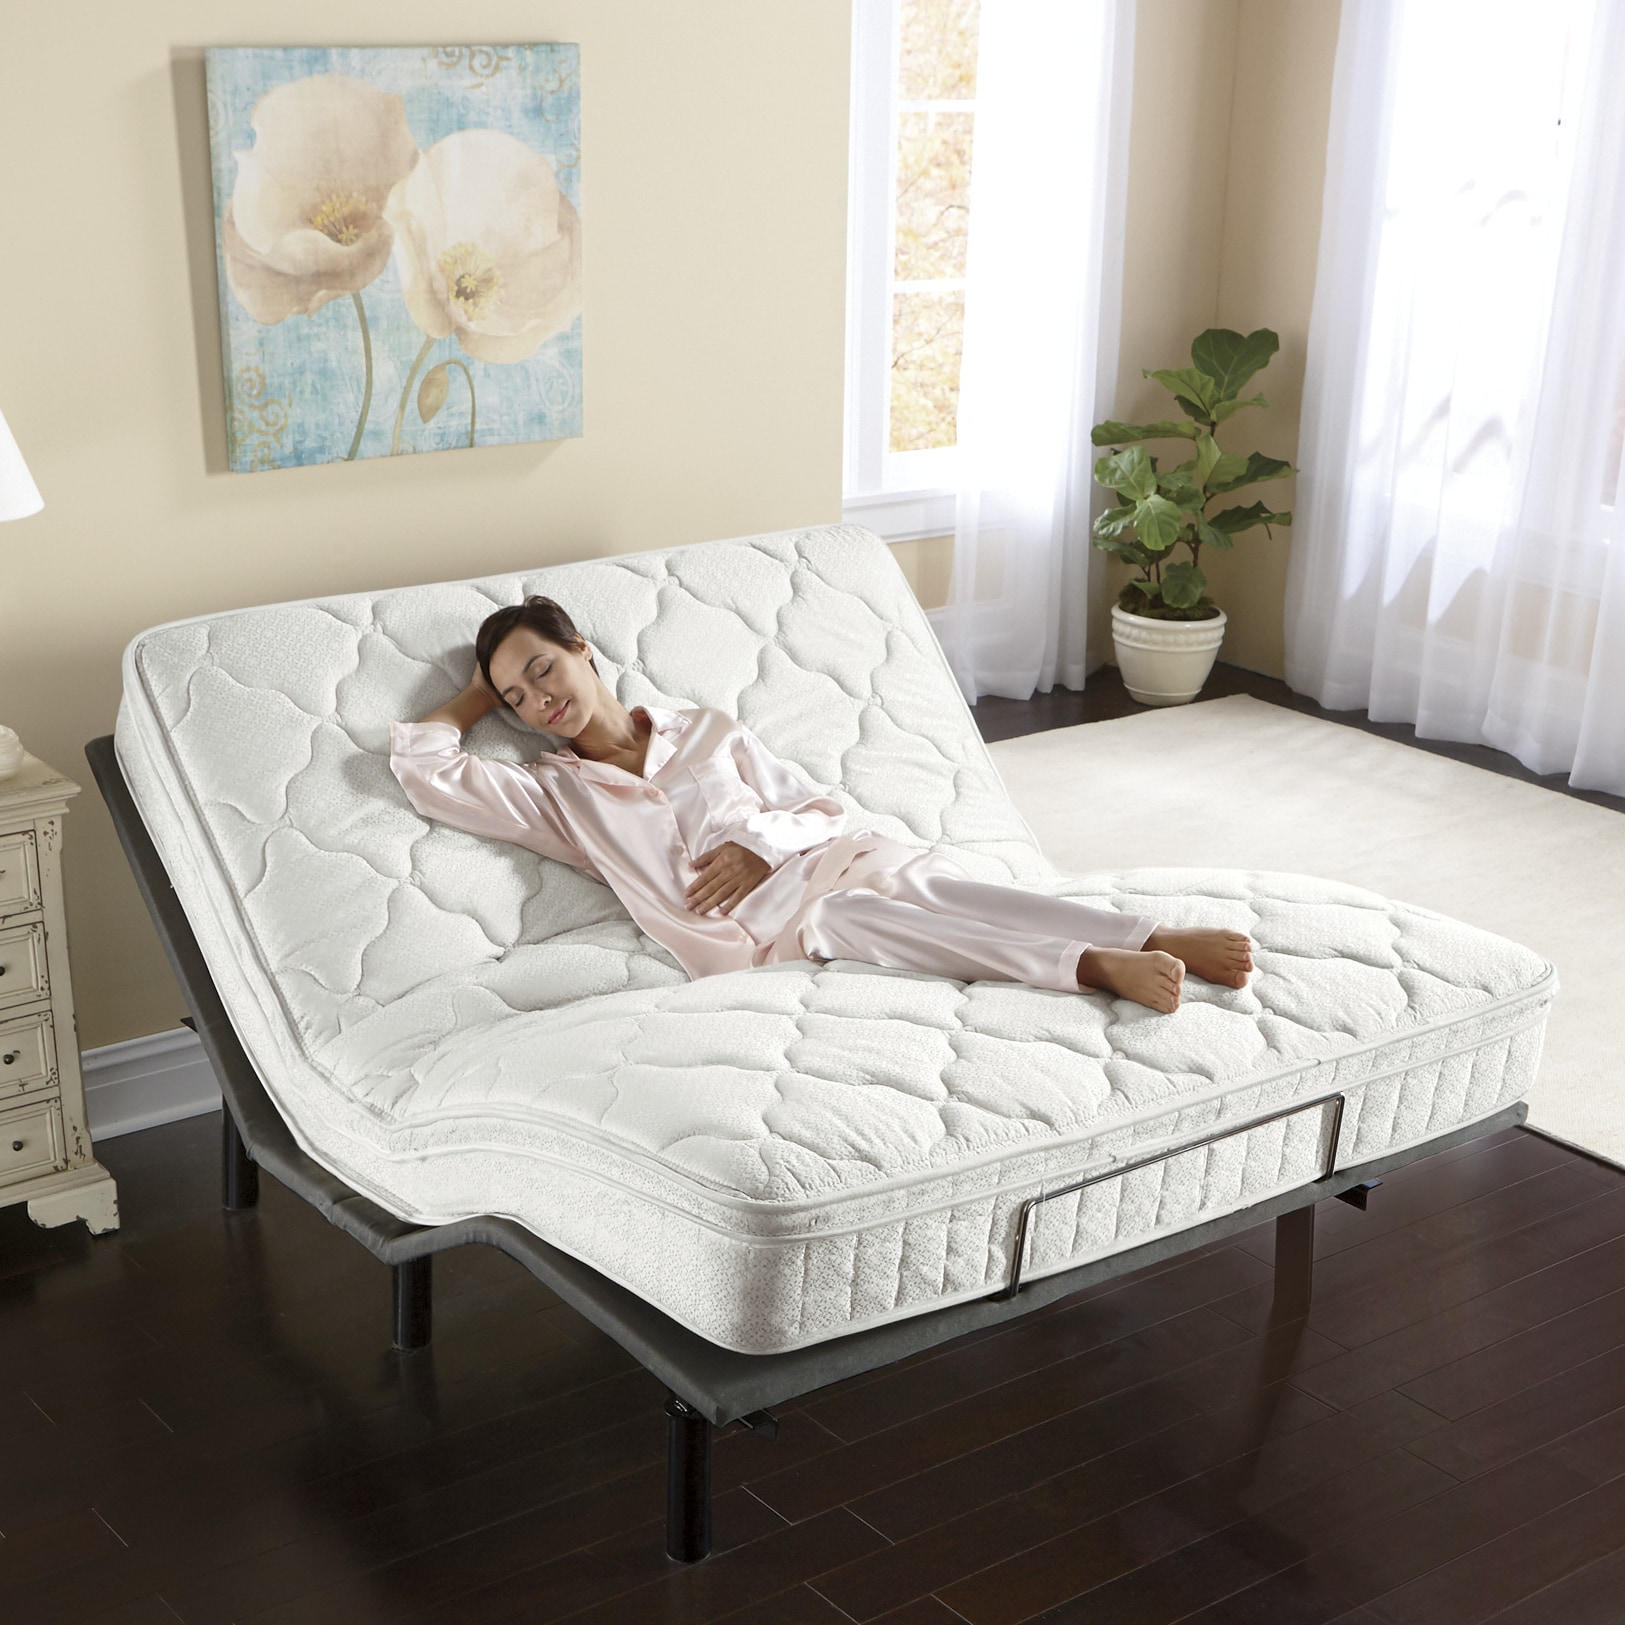 Full Bed Mattress Adjustable Electric Bed Base Seventh Avenue